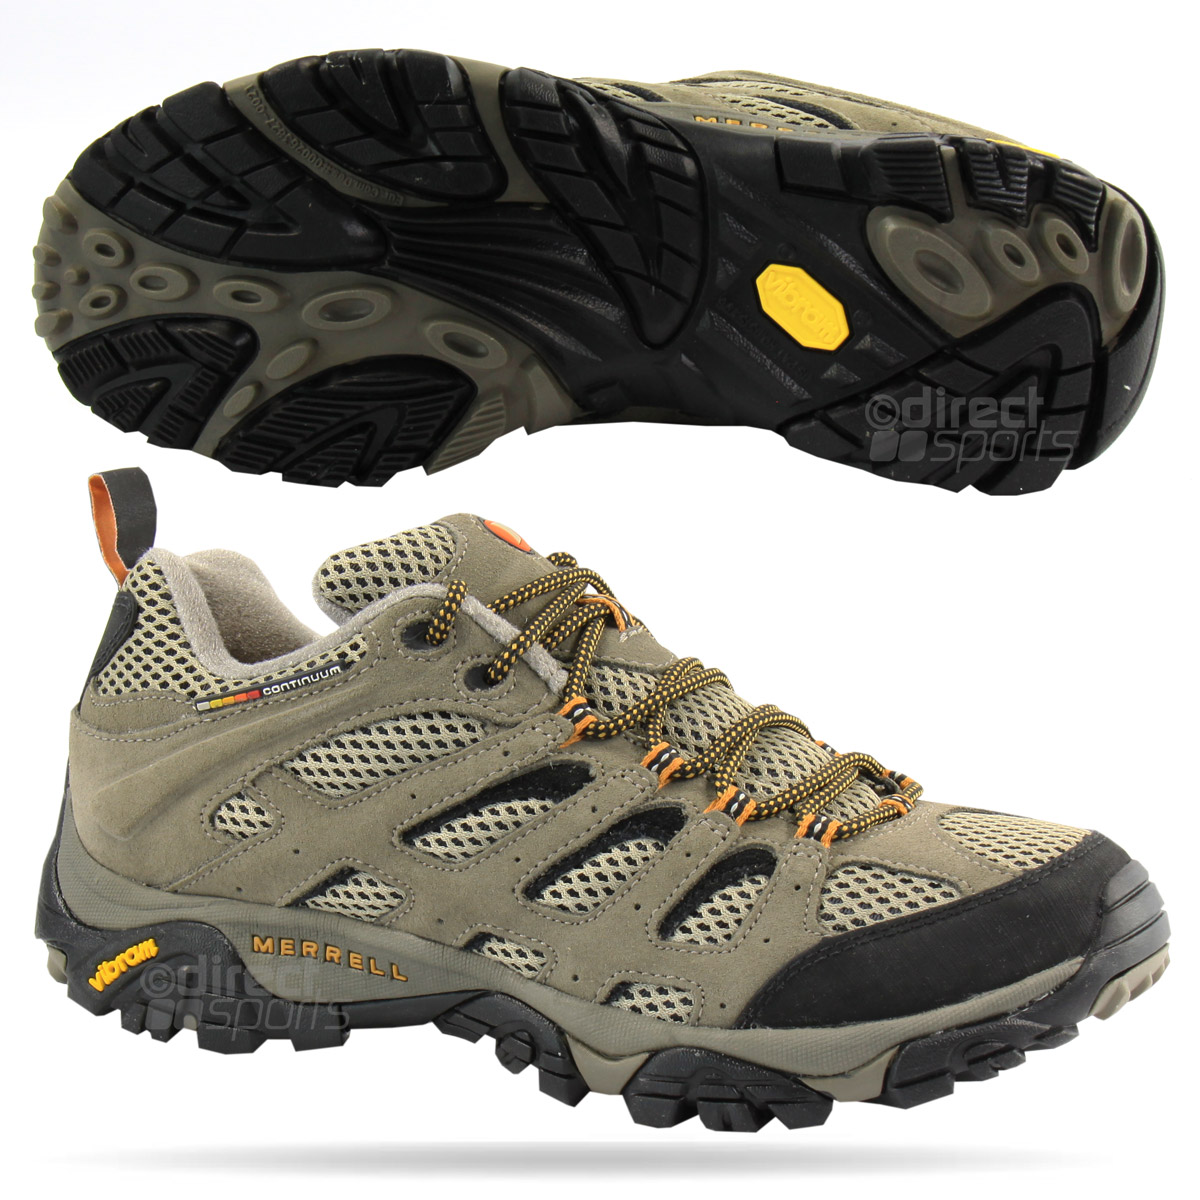 Merrell^ Men's Yokota Trail Mid Hiking Shoes, Waterproof, Brindel / Firefly